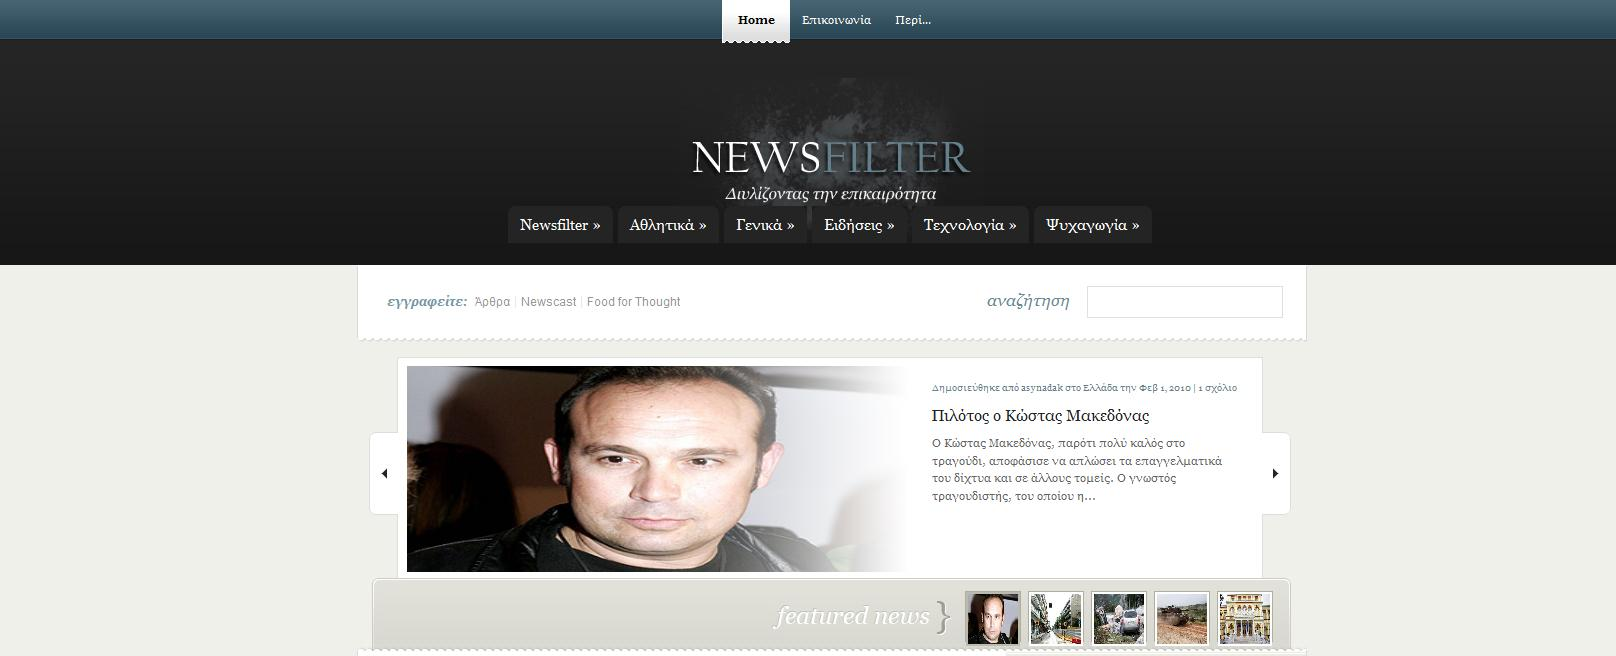 new features on newsfilter.gr